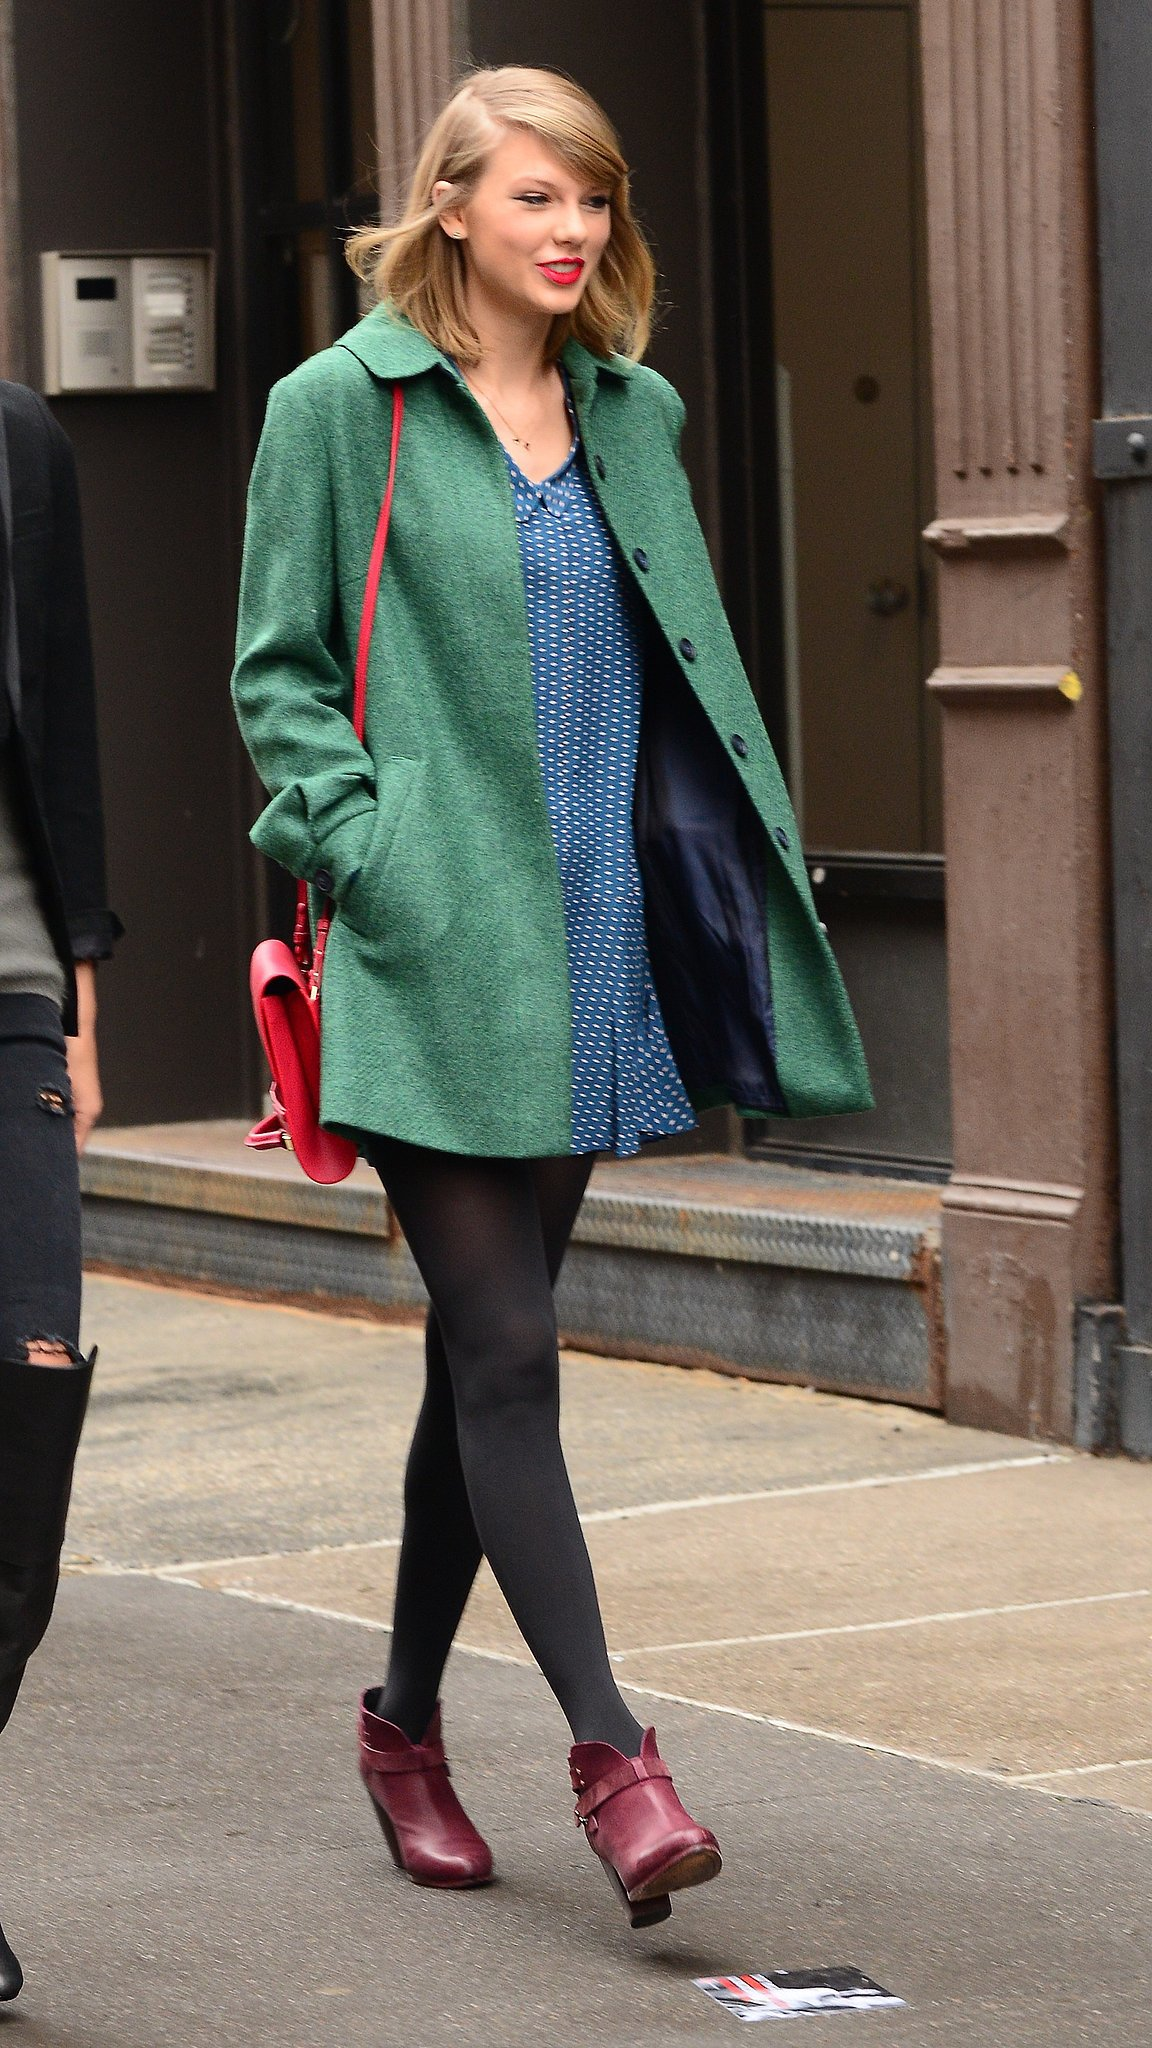 Taylor swift 39 s street style taylor swift 39 s signature Fashion style of taylor swift